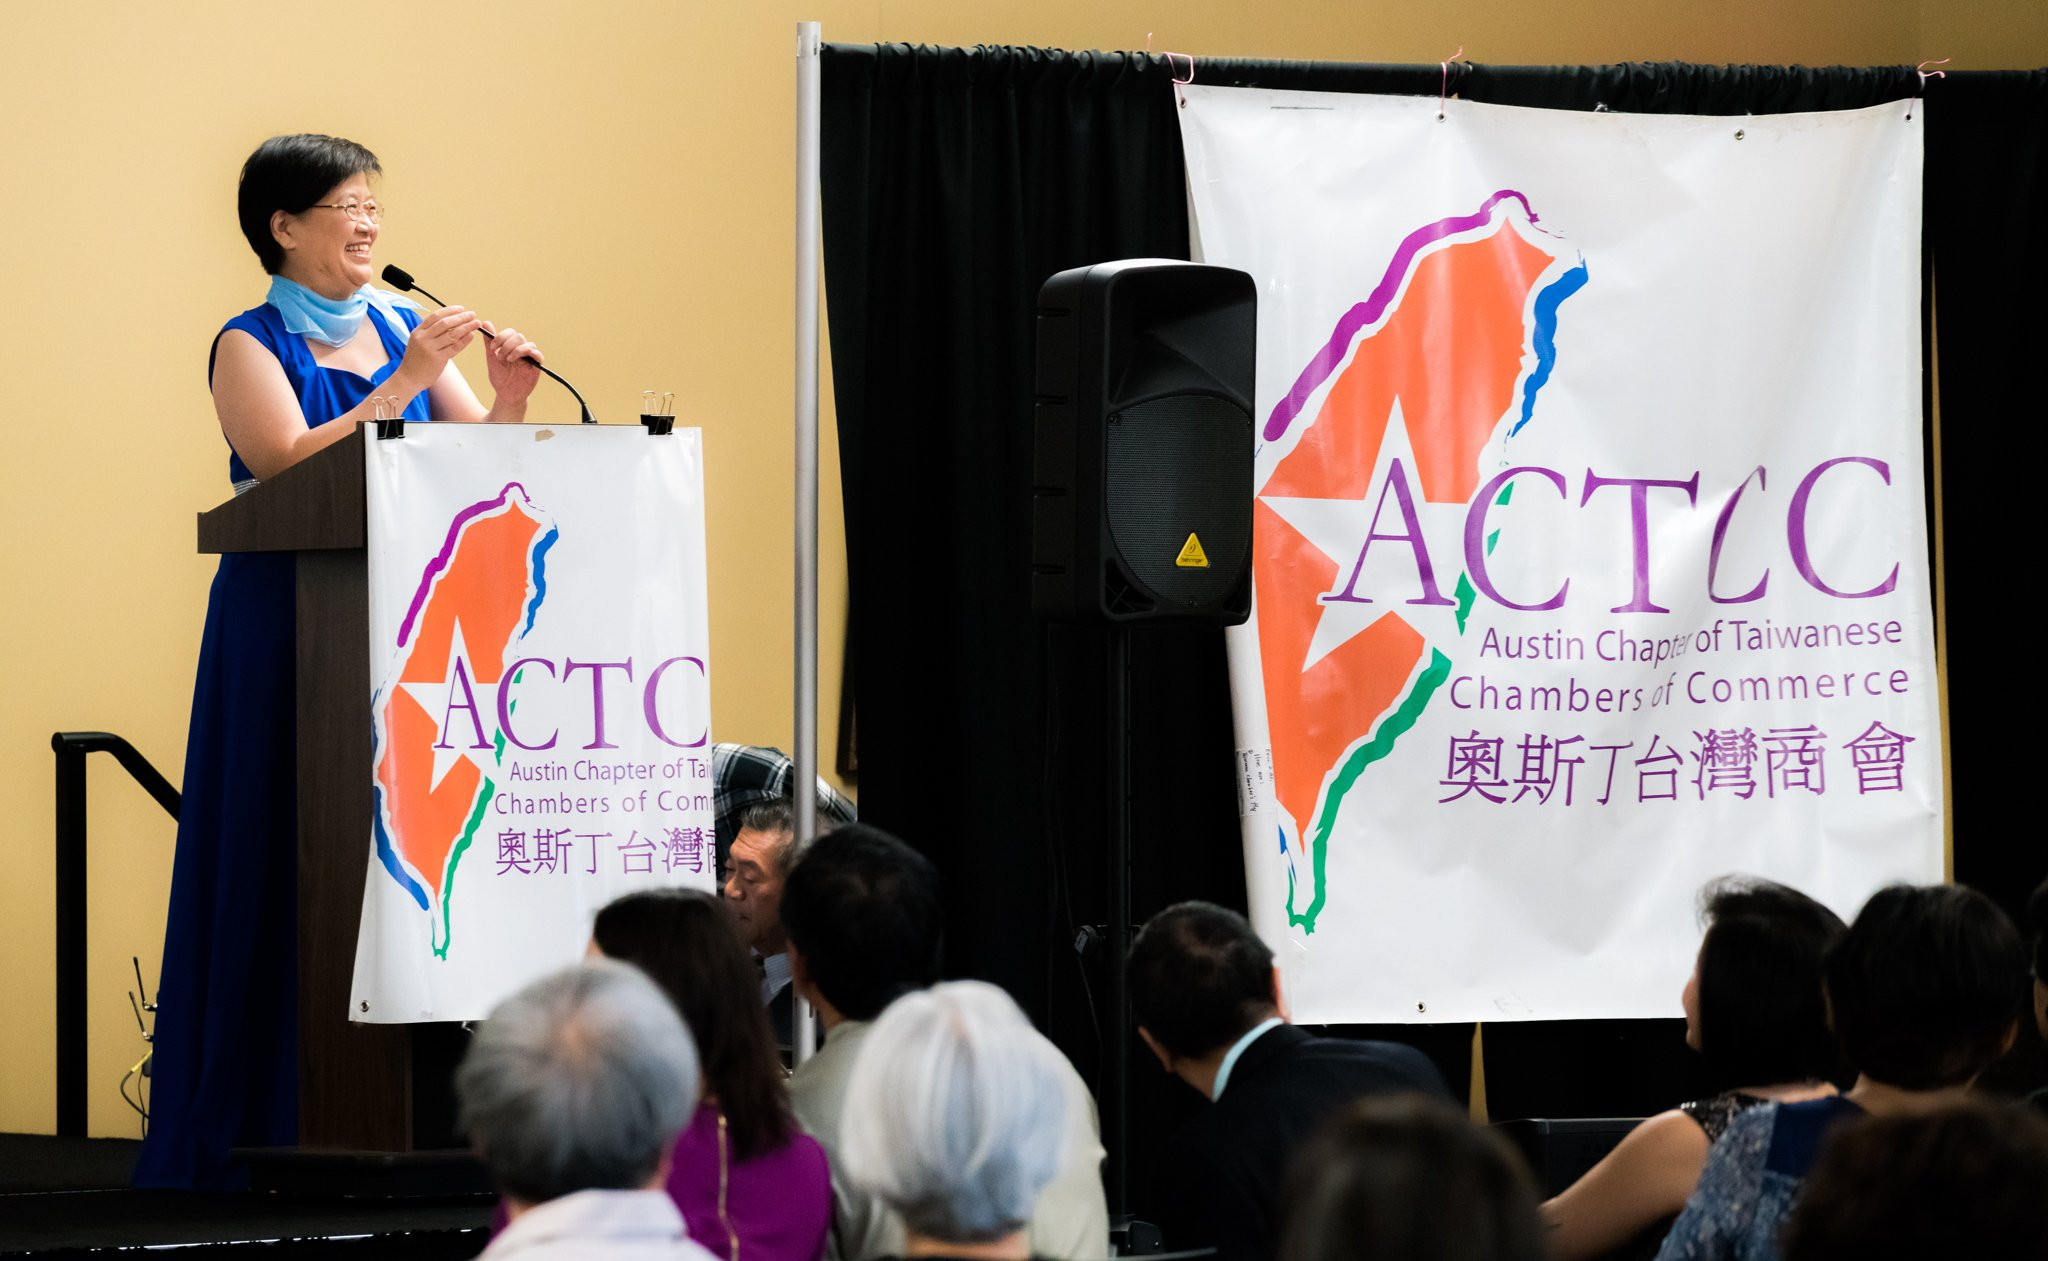 https://0201.nccdn.net/1_2/000/000/19b/074/29OCT2016---ACTCC-TW-National-Day-Celebration-at-AARC-20.JPG